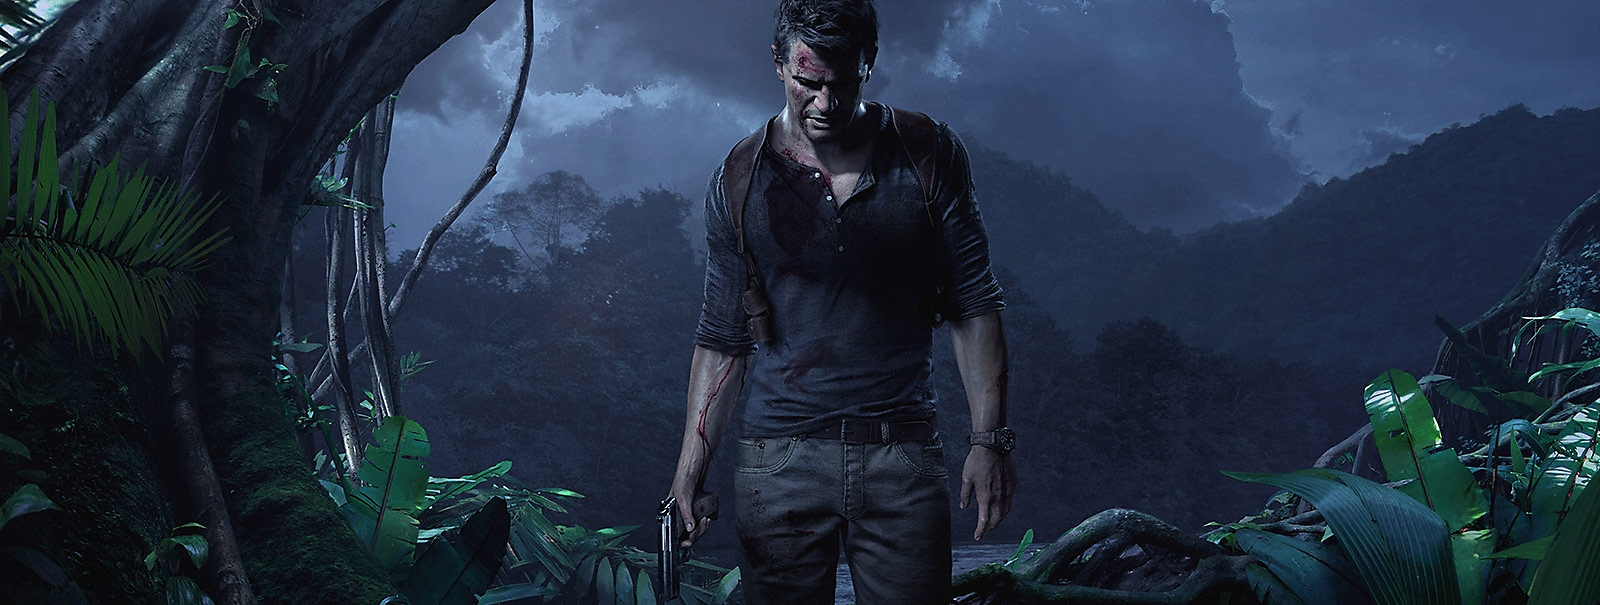 uncharted a thief's end hero